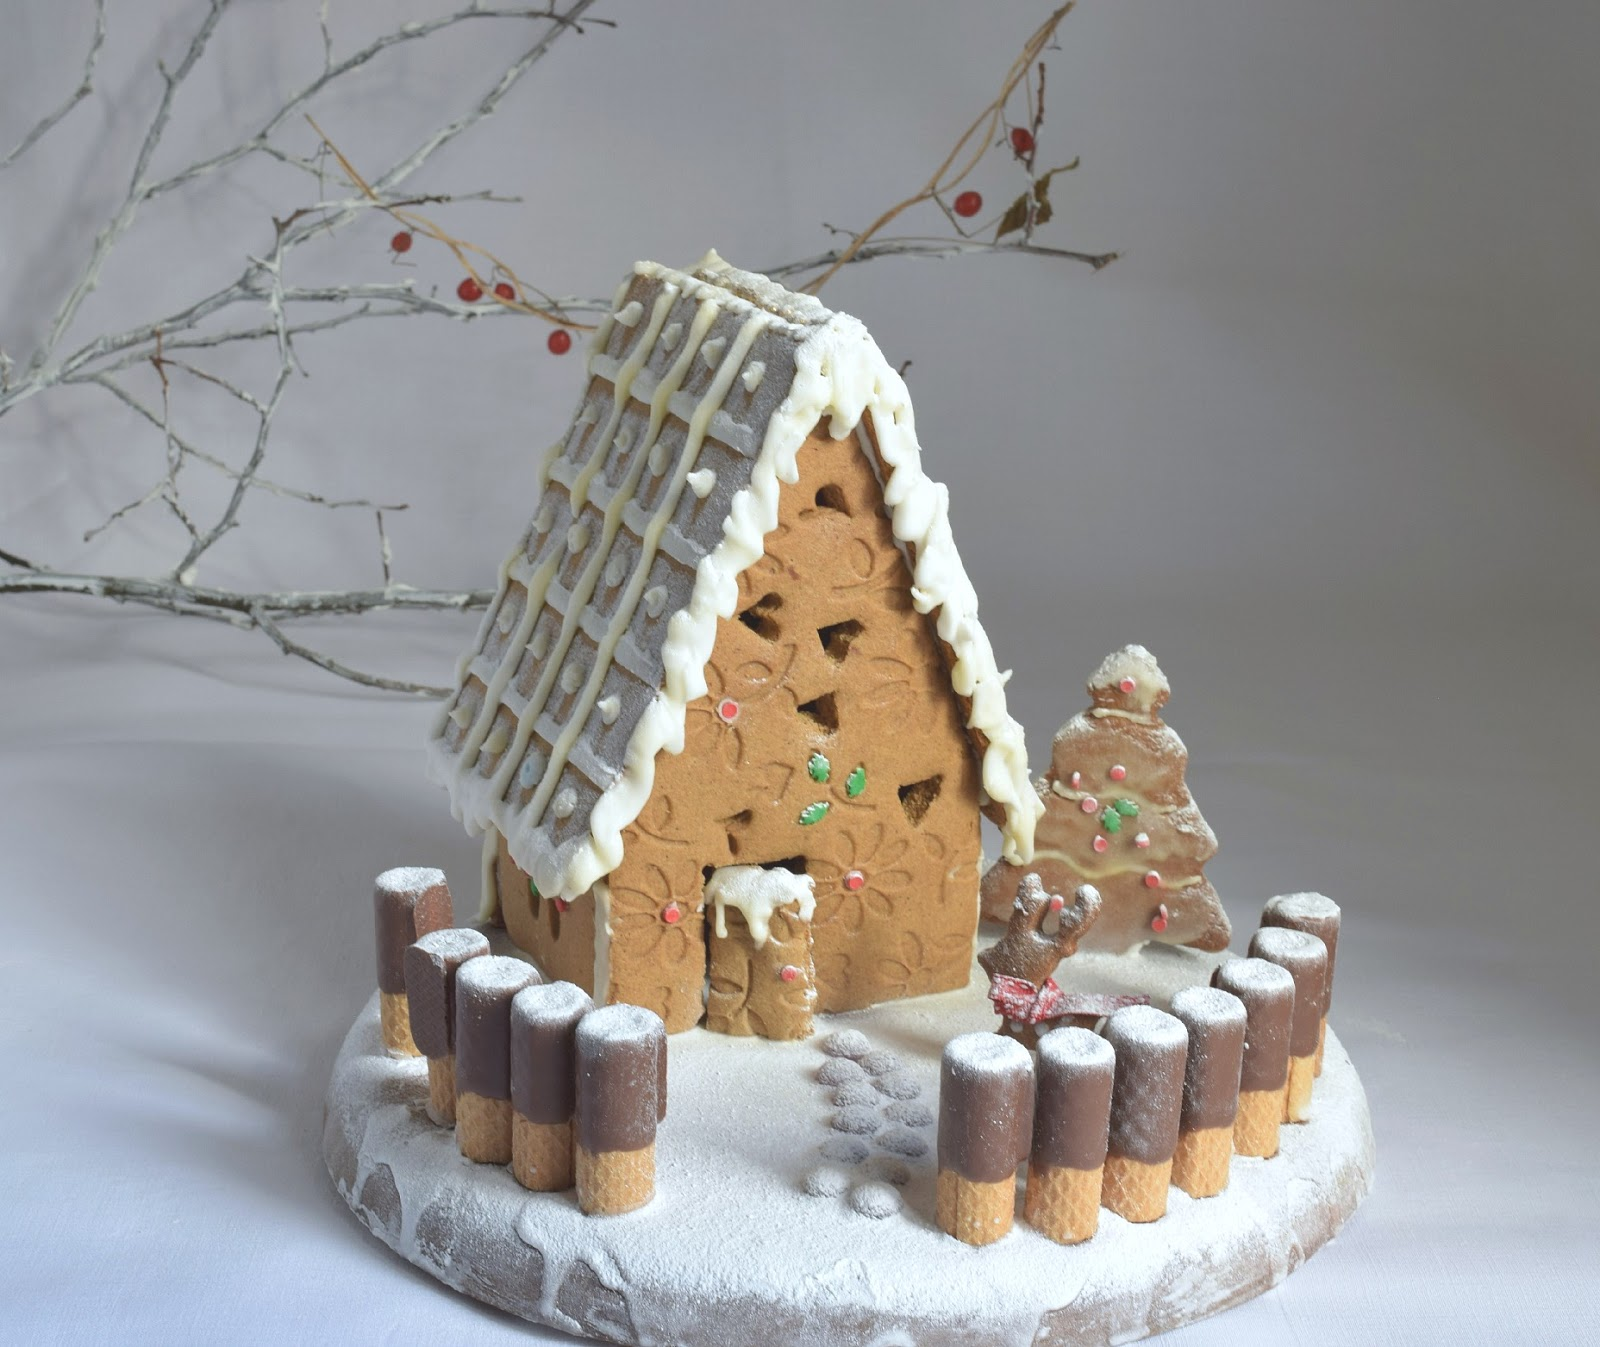 Gingerbread House - A Kingdom For A Cake